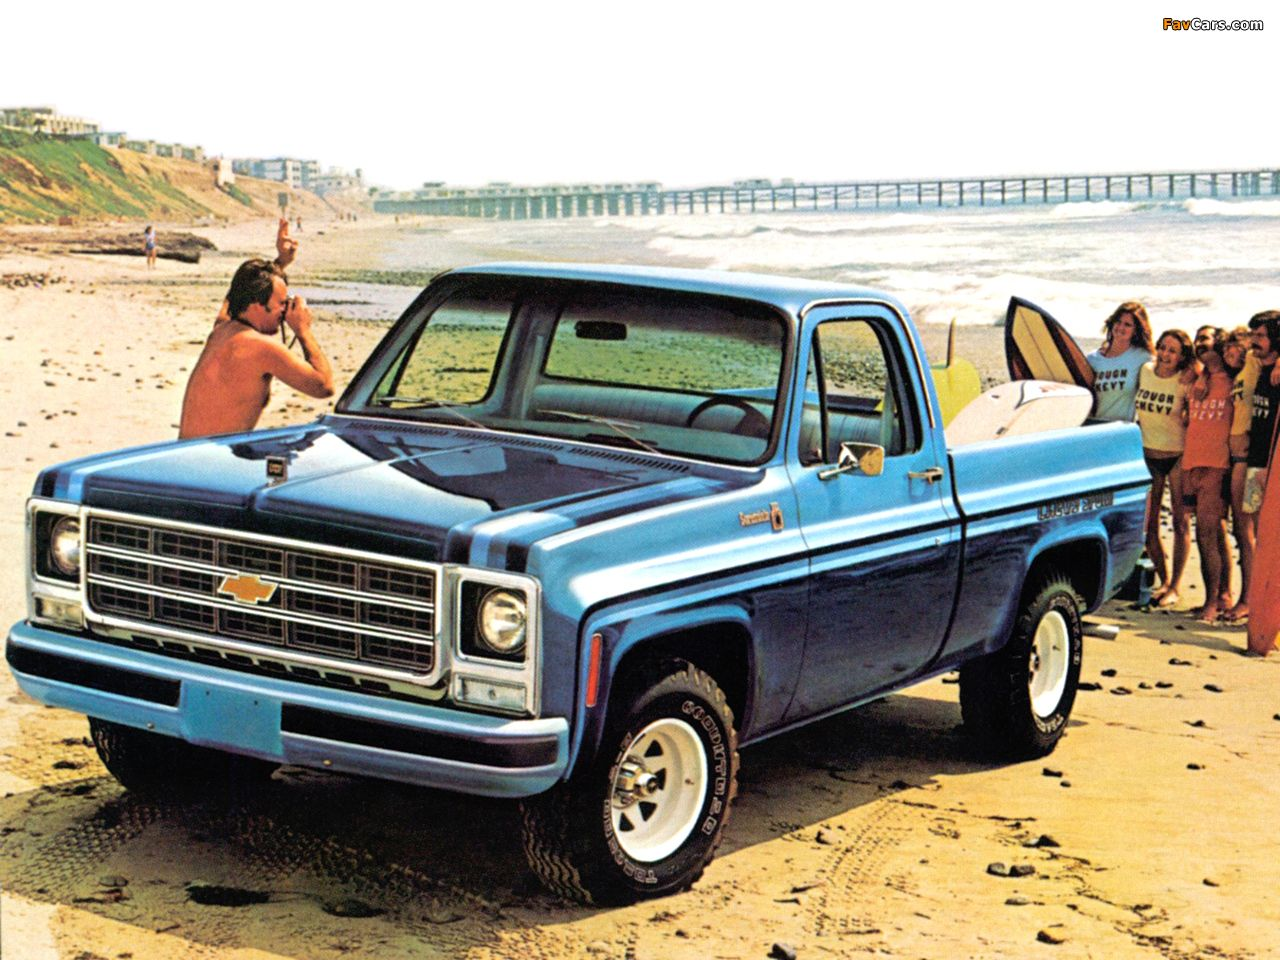 1979 chevrolet c10 scottsdale sport pickup sqaurebodies pinterest chevrolet chevy and. Black Bedroom Furniture Sets. Home Design Ideas